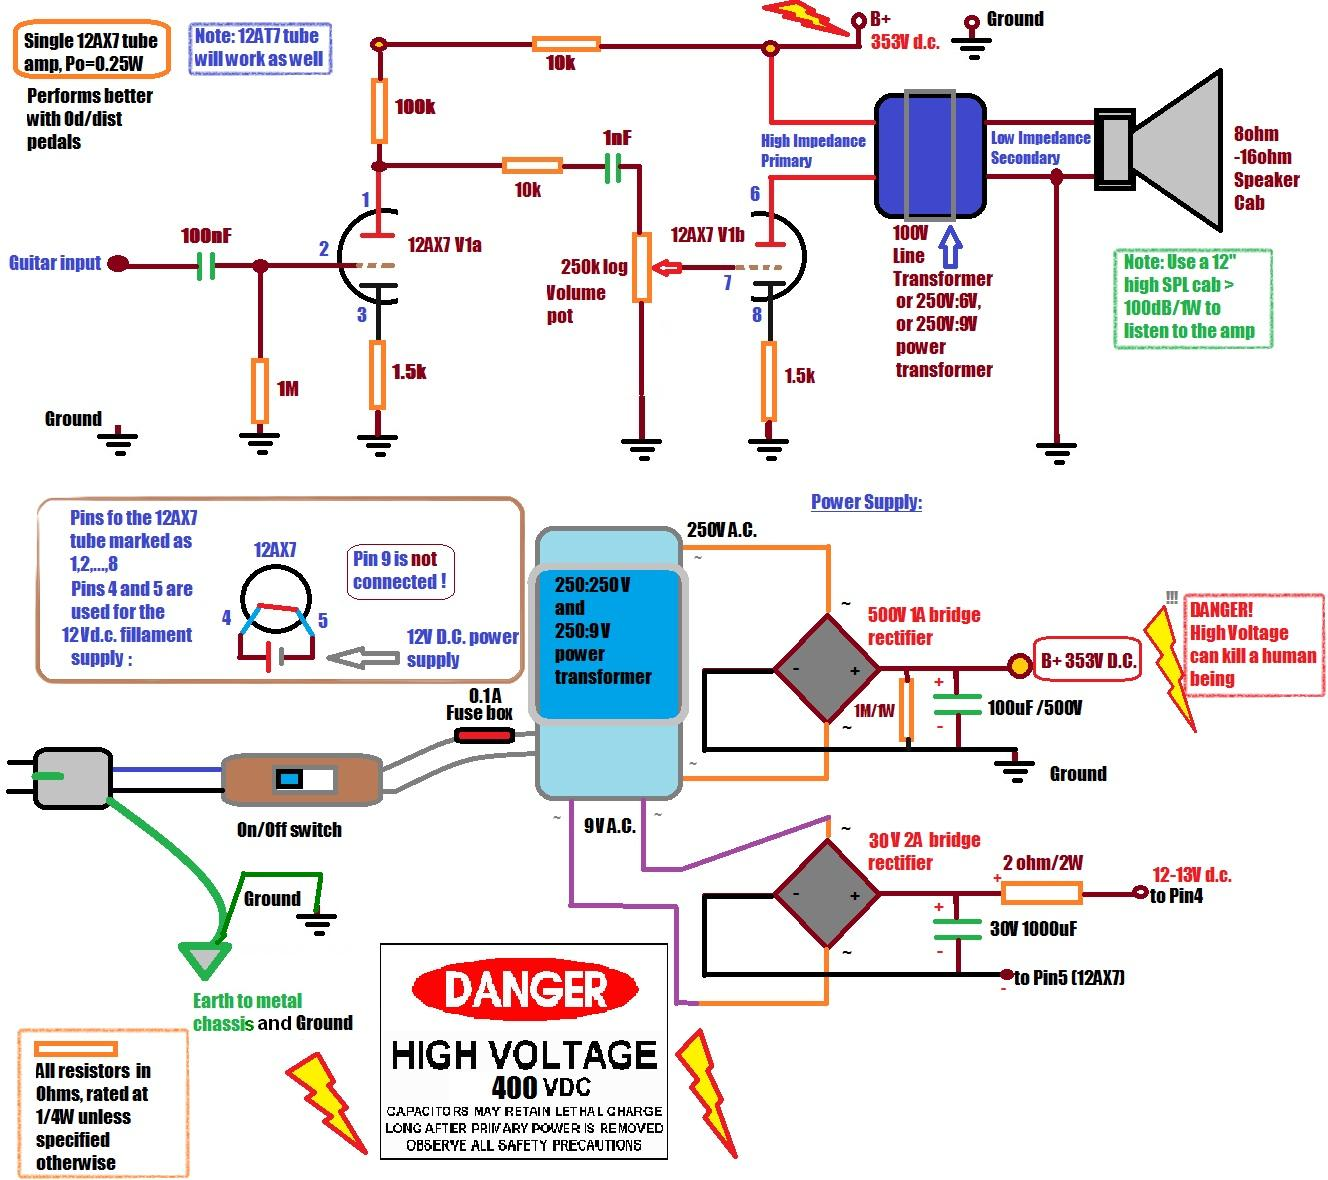 Guitar Amp Circuit Diagram | Simple Guitar Amp Wiring Diagram Wiring Library